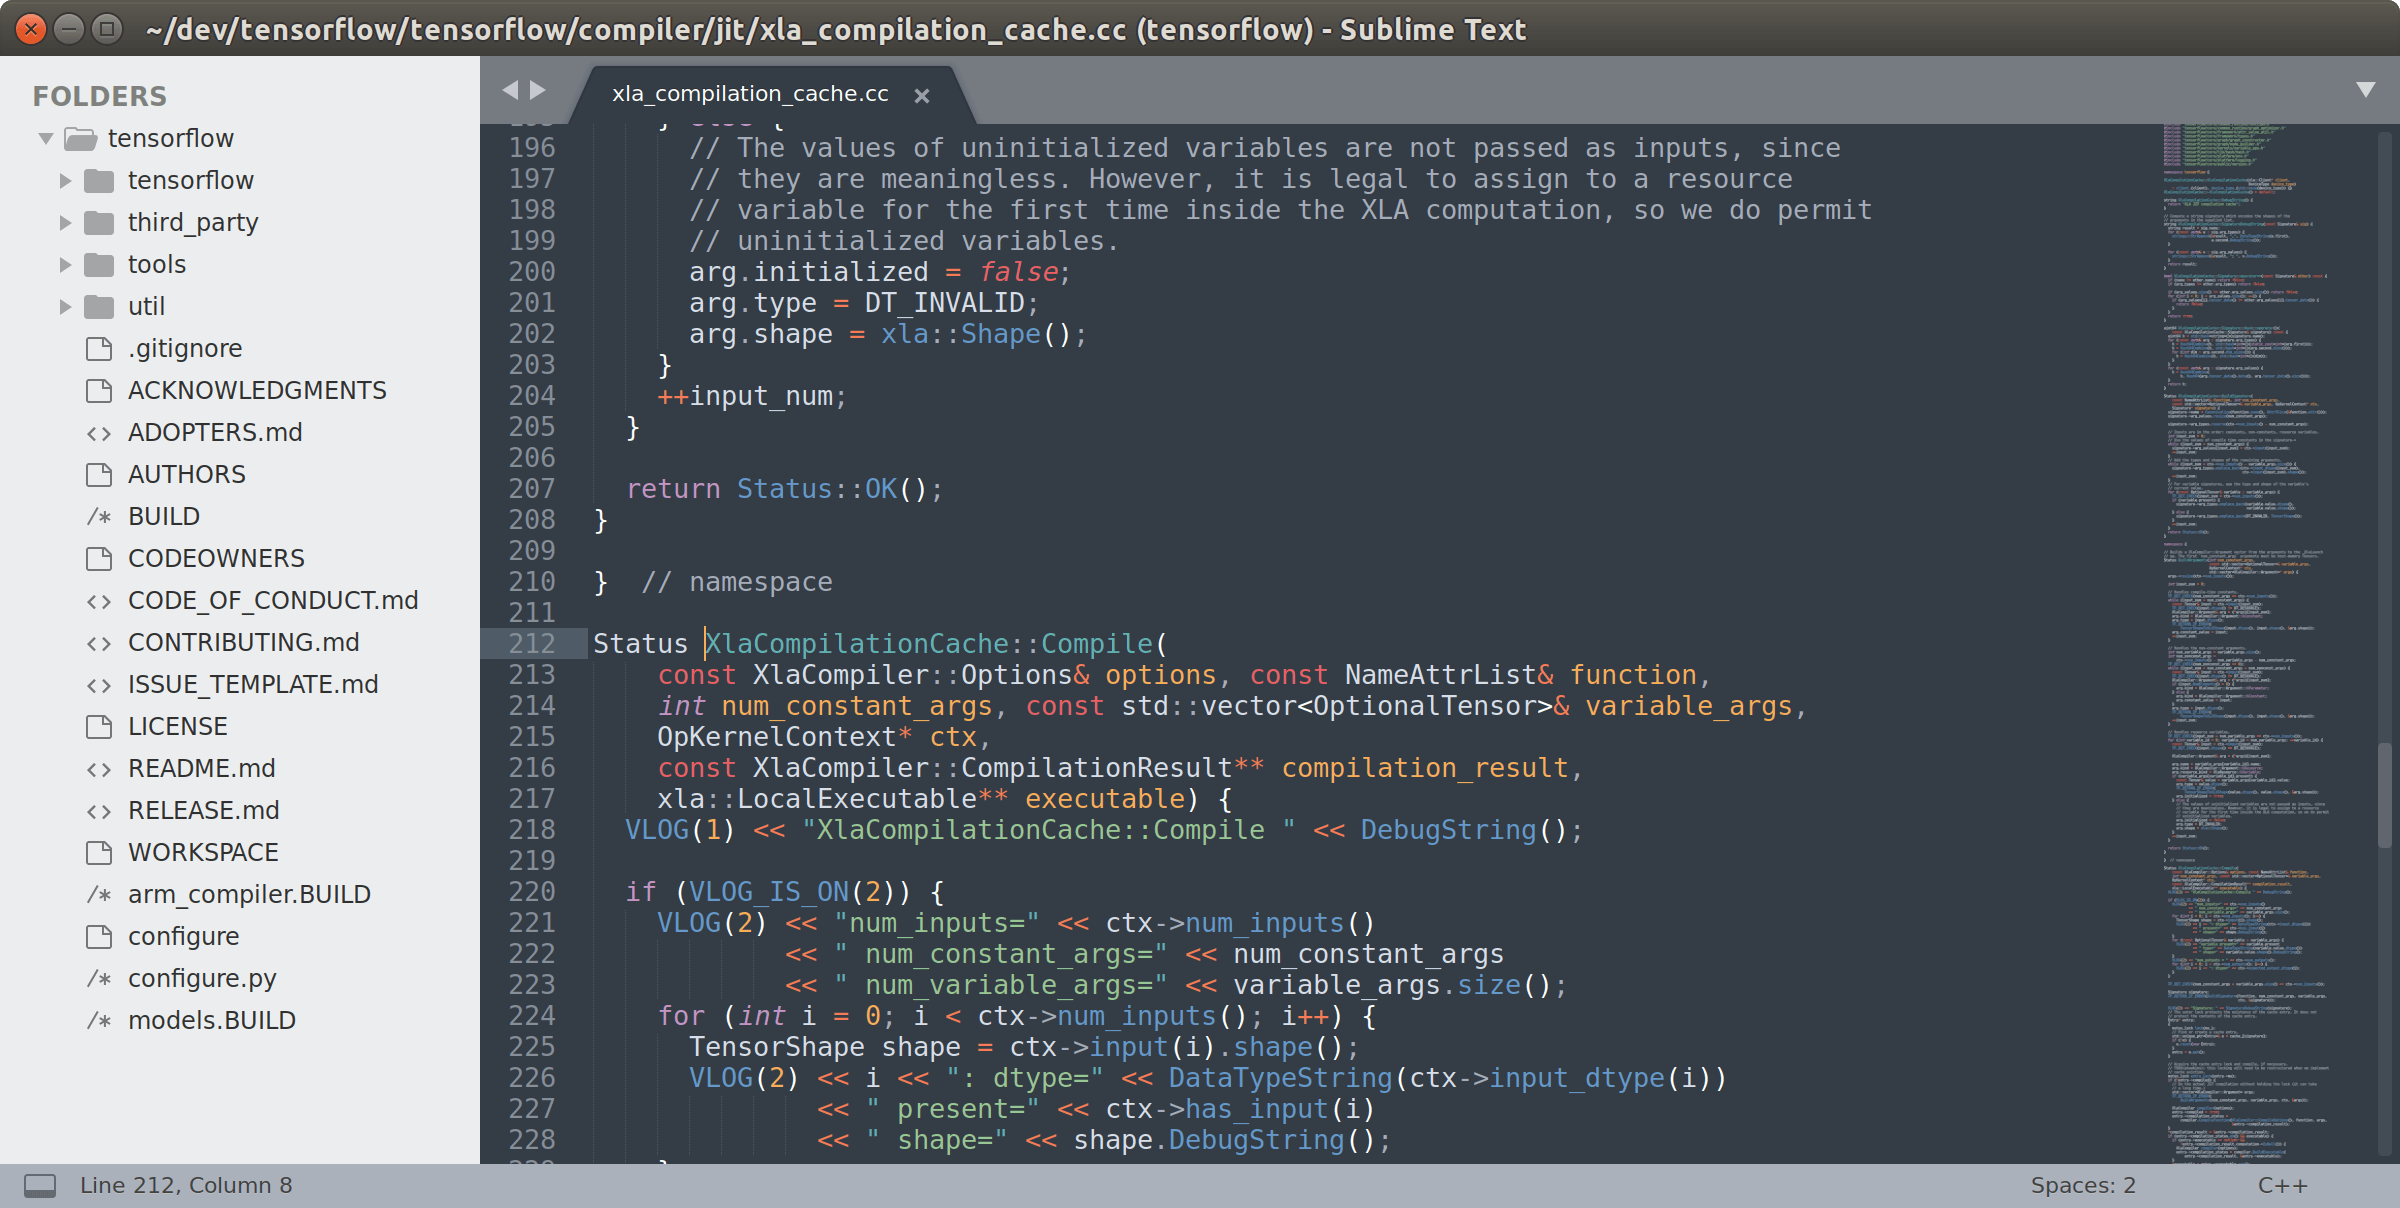 Screenshot of code in Sublime Text